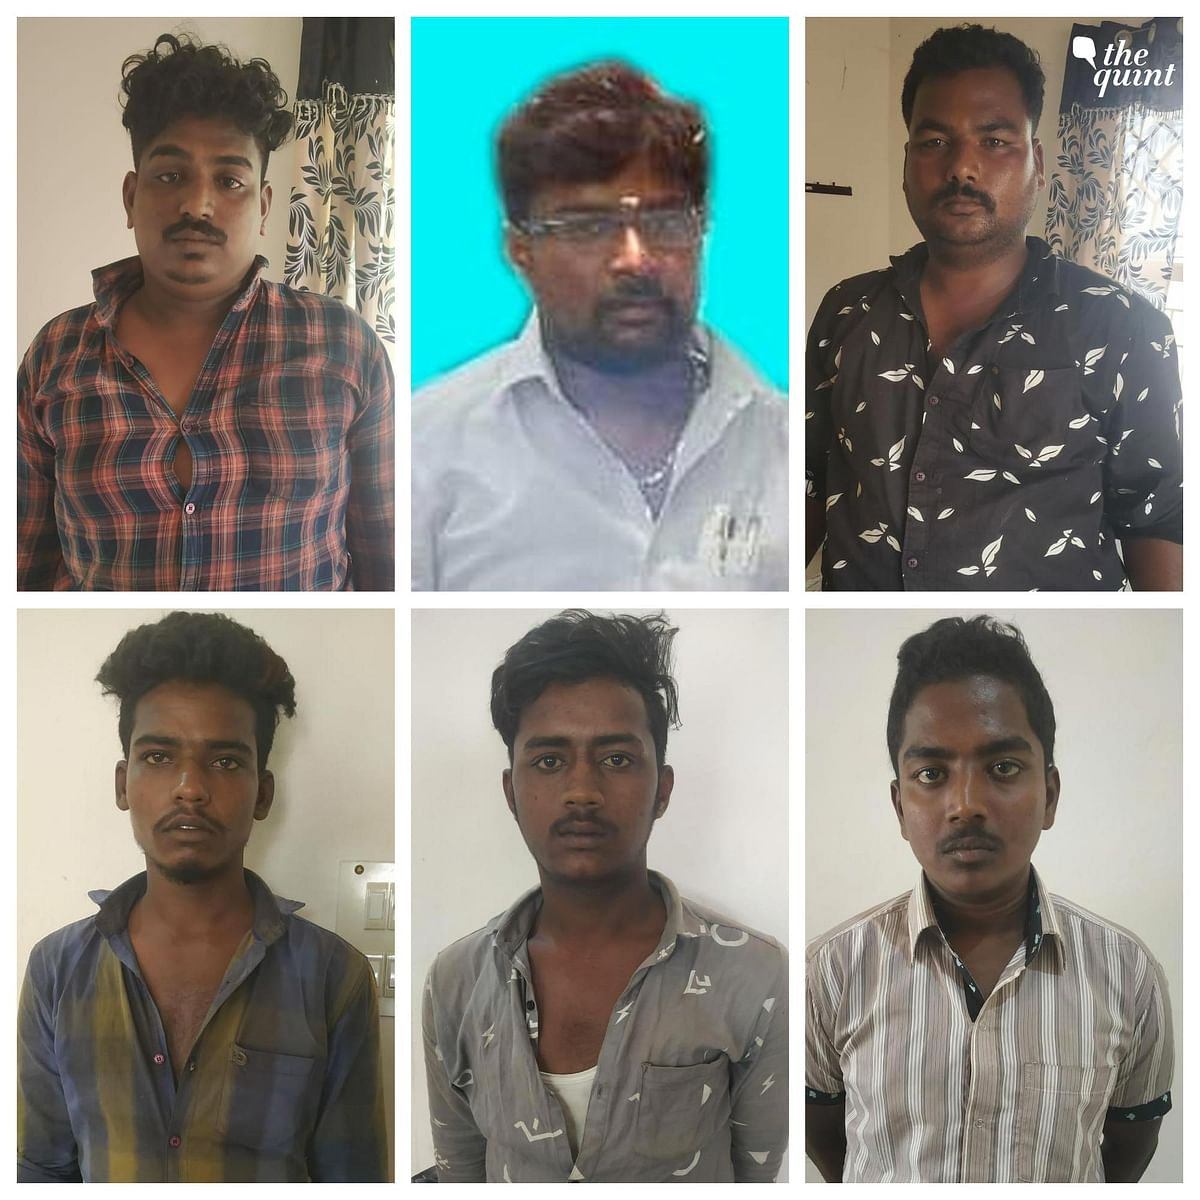 The police have arrested six persons in connection with the murders. This includes - Sathya, Karthi Sounder, Nandakumar, Ajith and Madan.